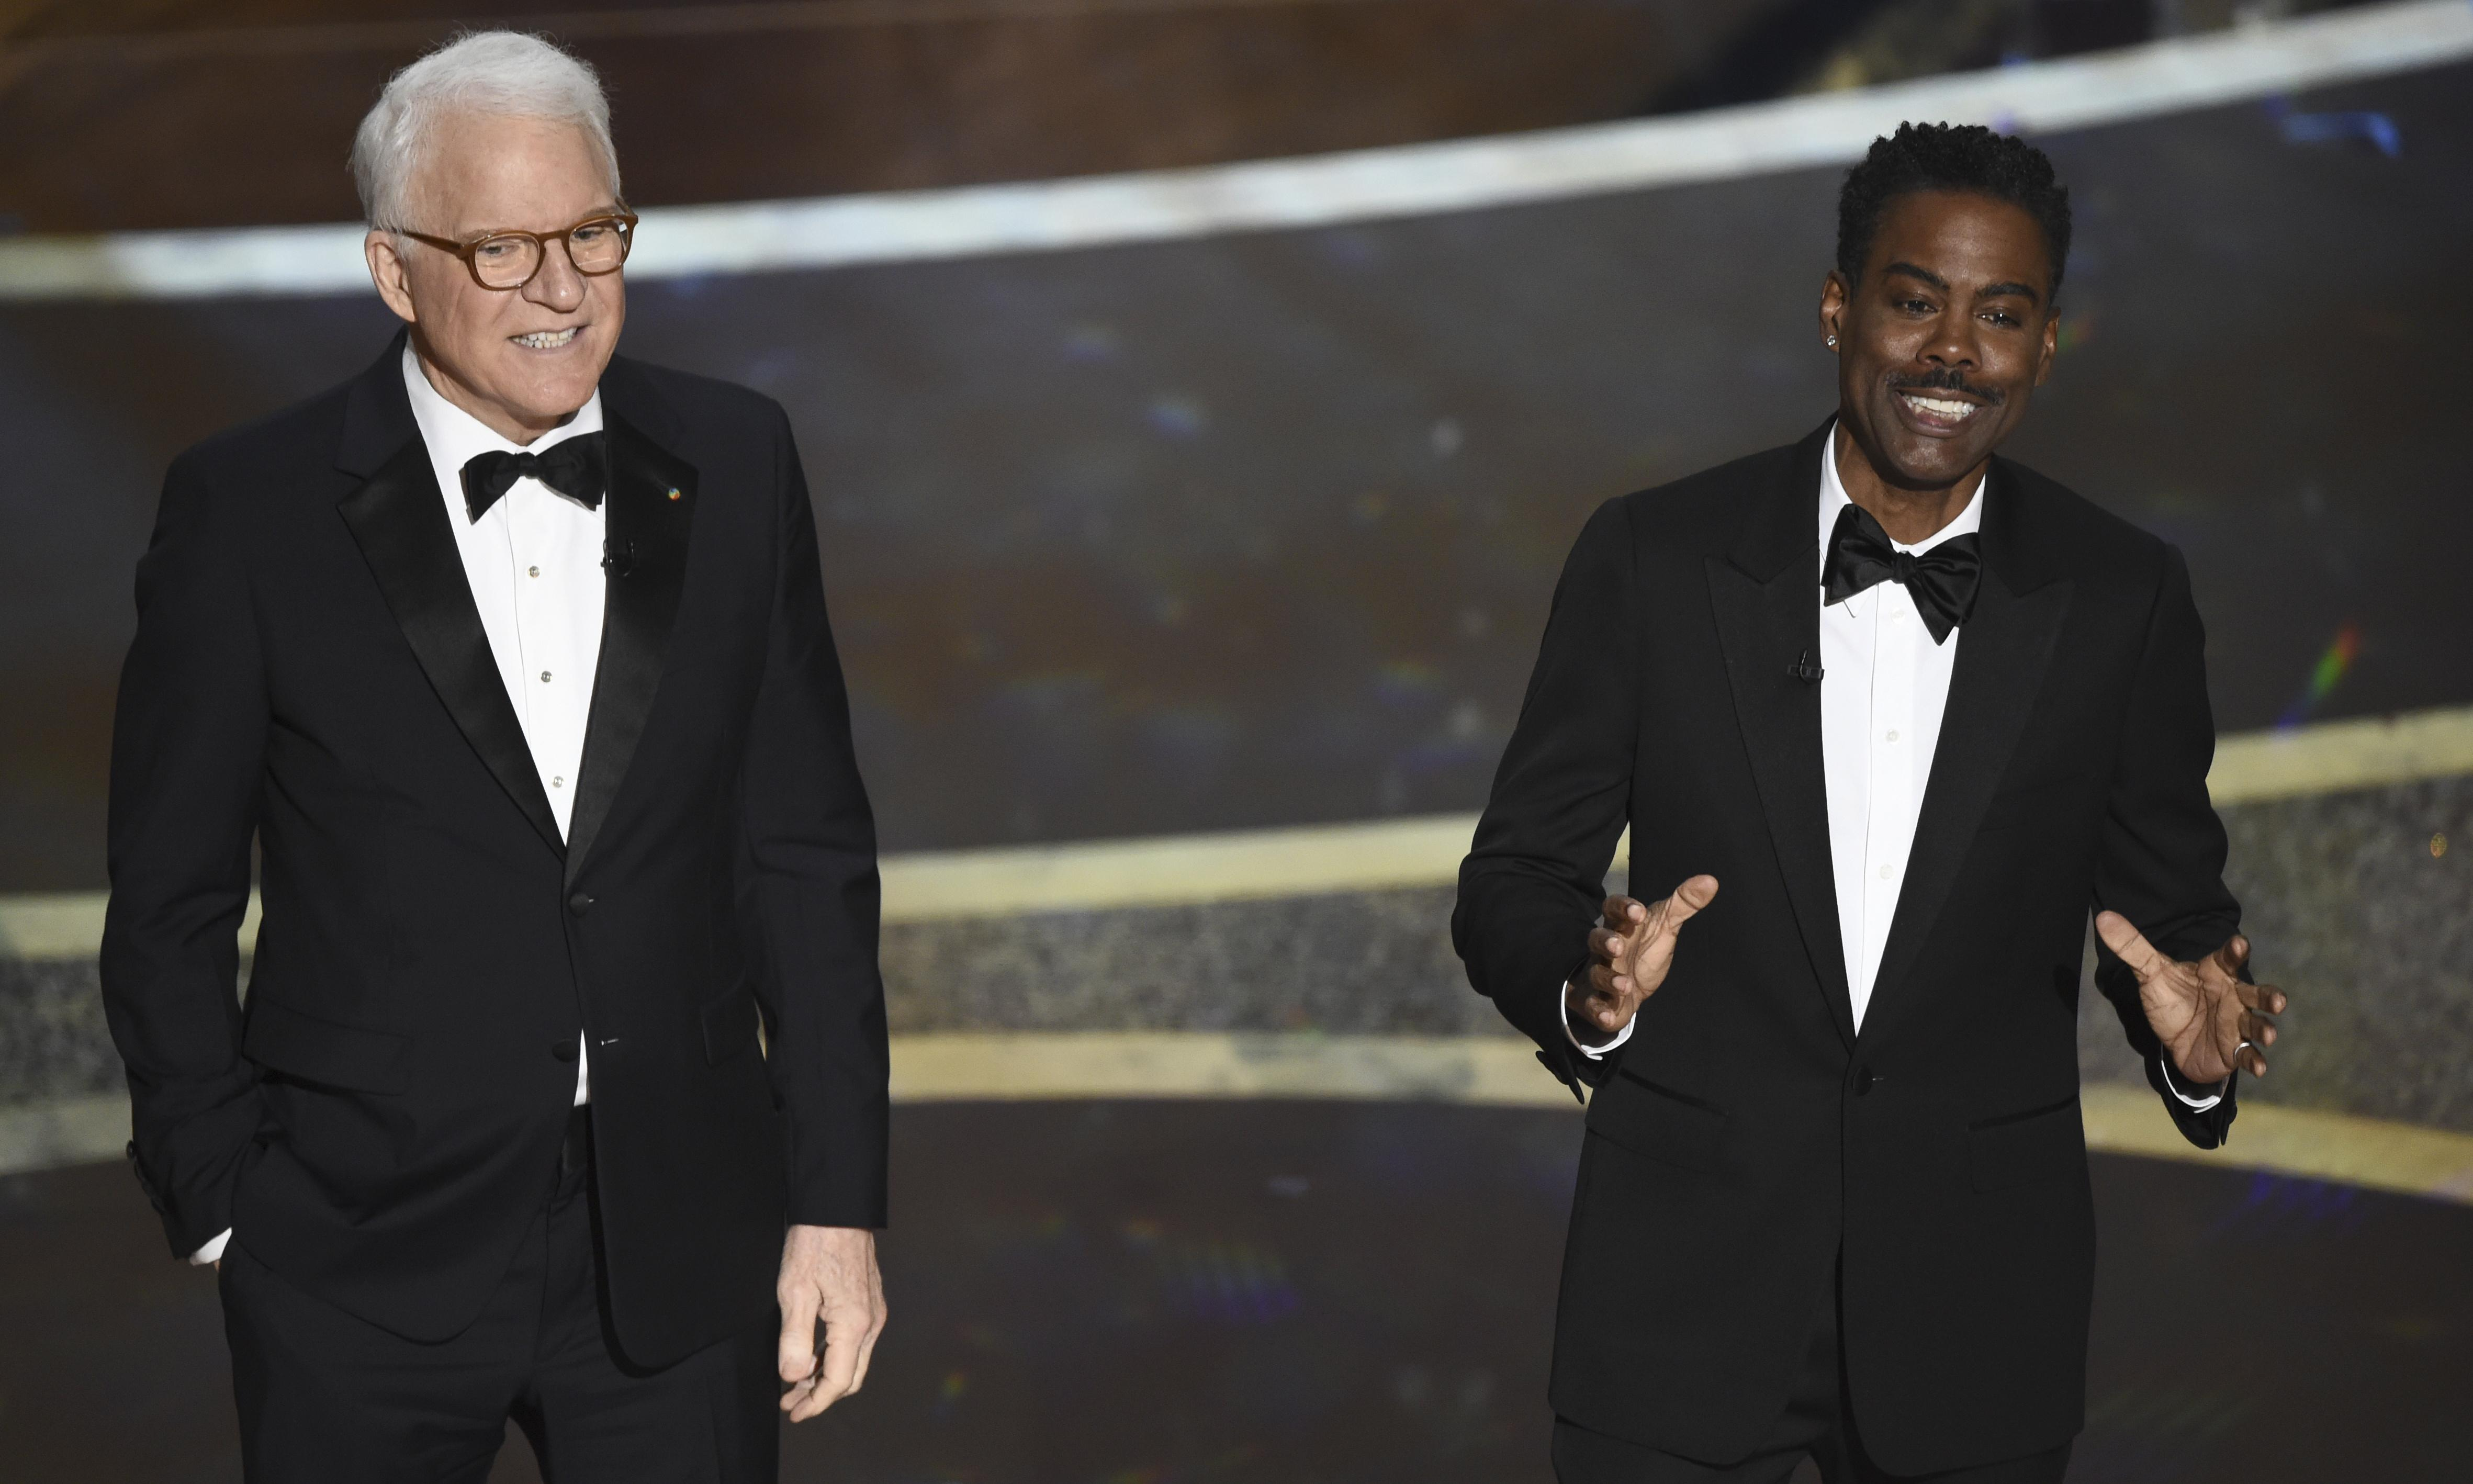 Oscars TV viewing figures sinks to all-time low